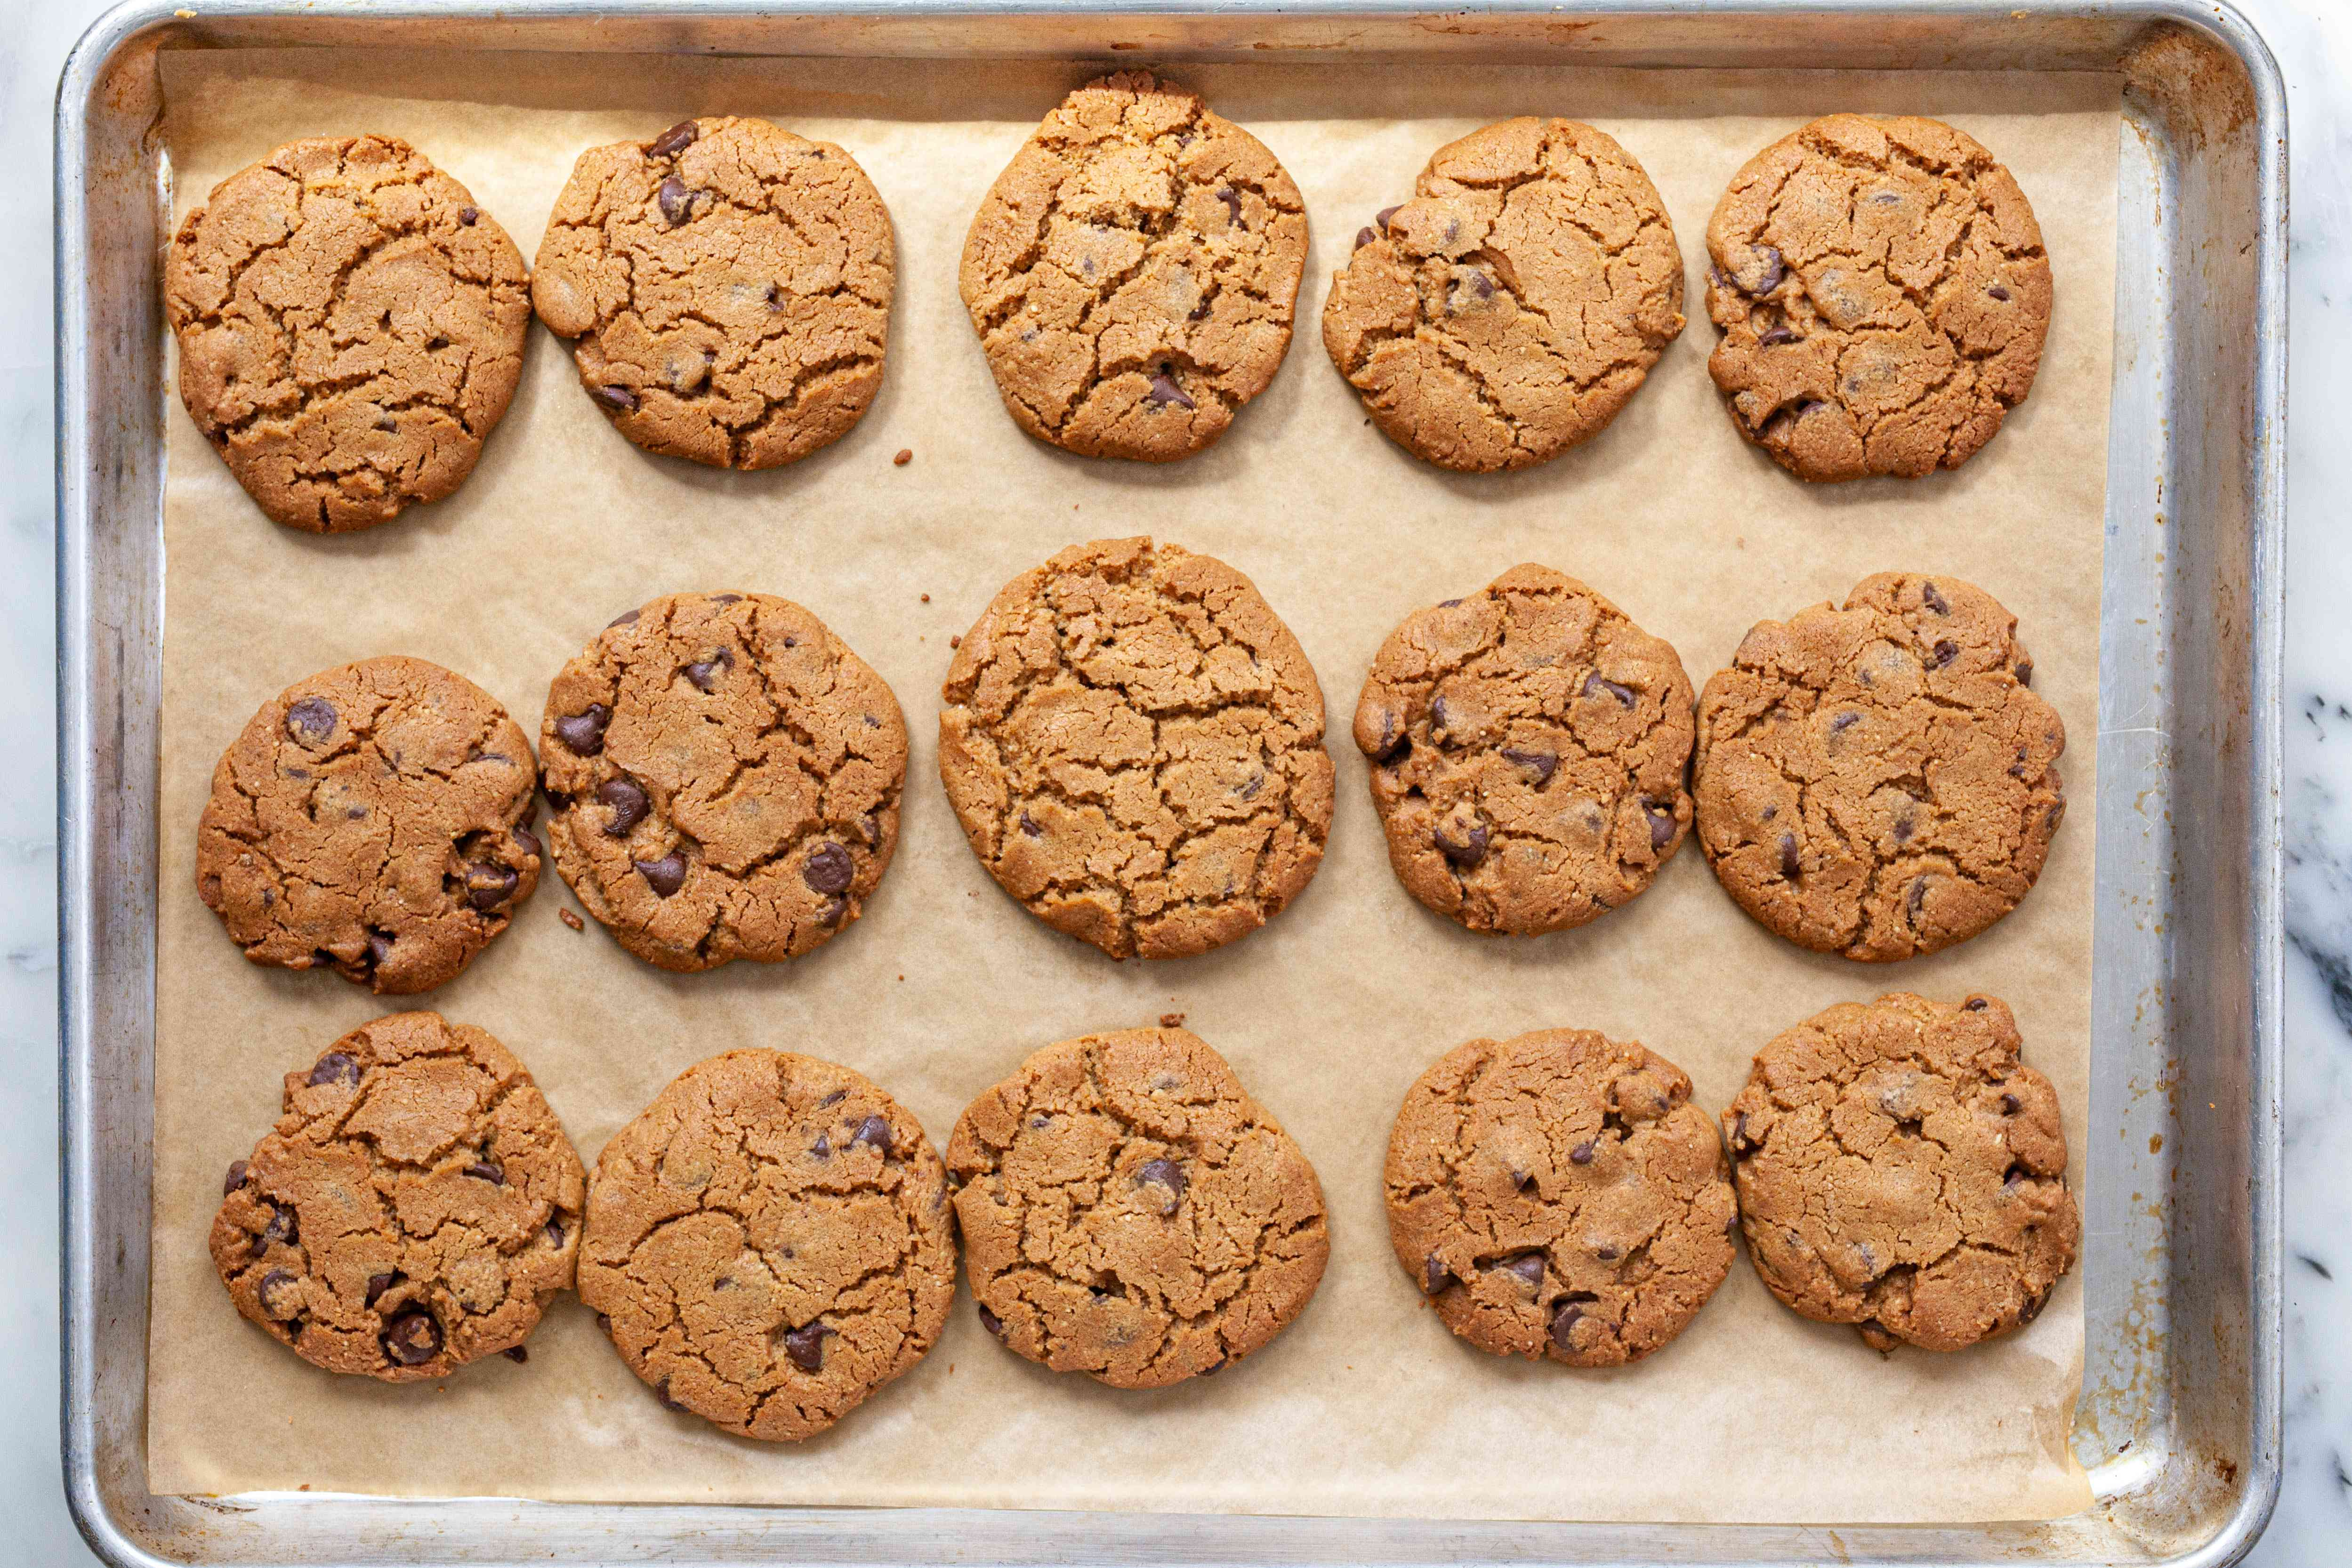 An overhead view of a baking sheet of baked Flourless Peanut Butter Cookies with Chocolate Chips.